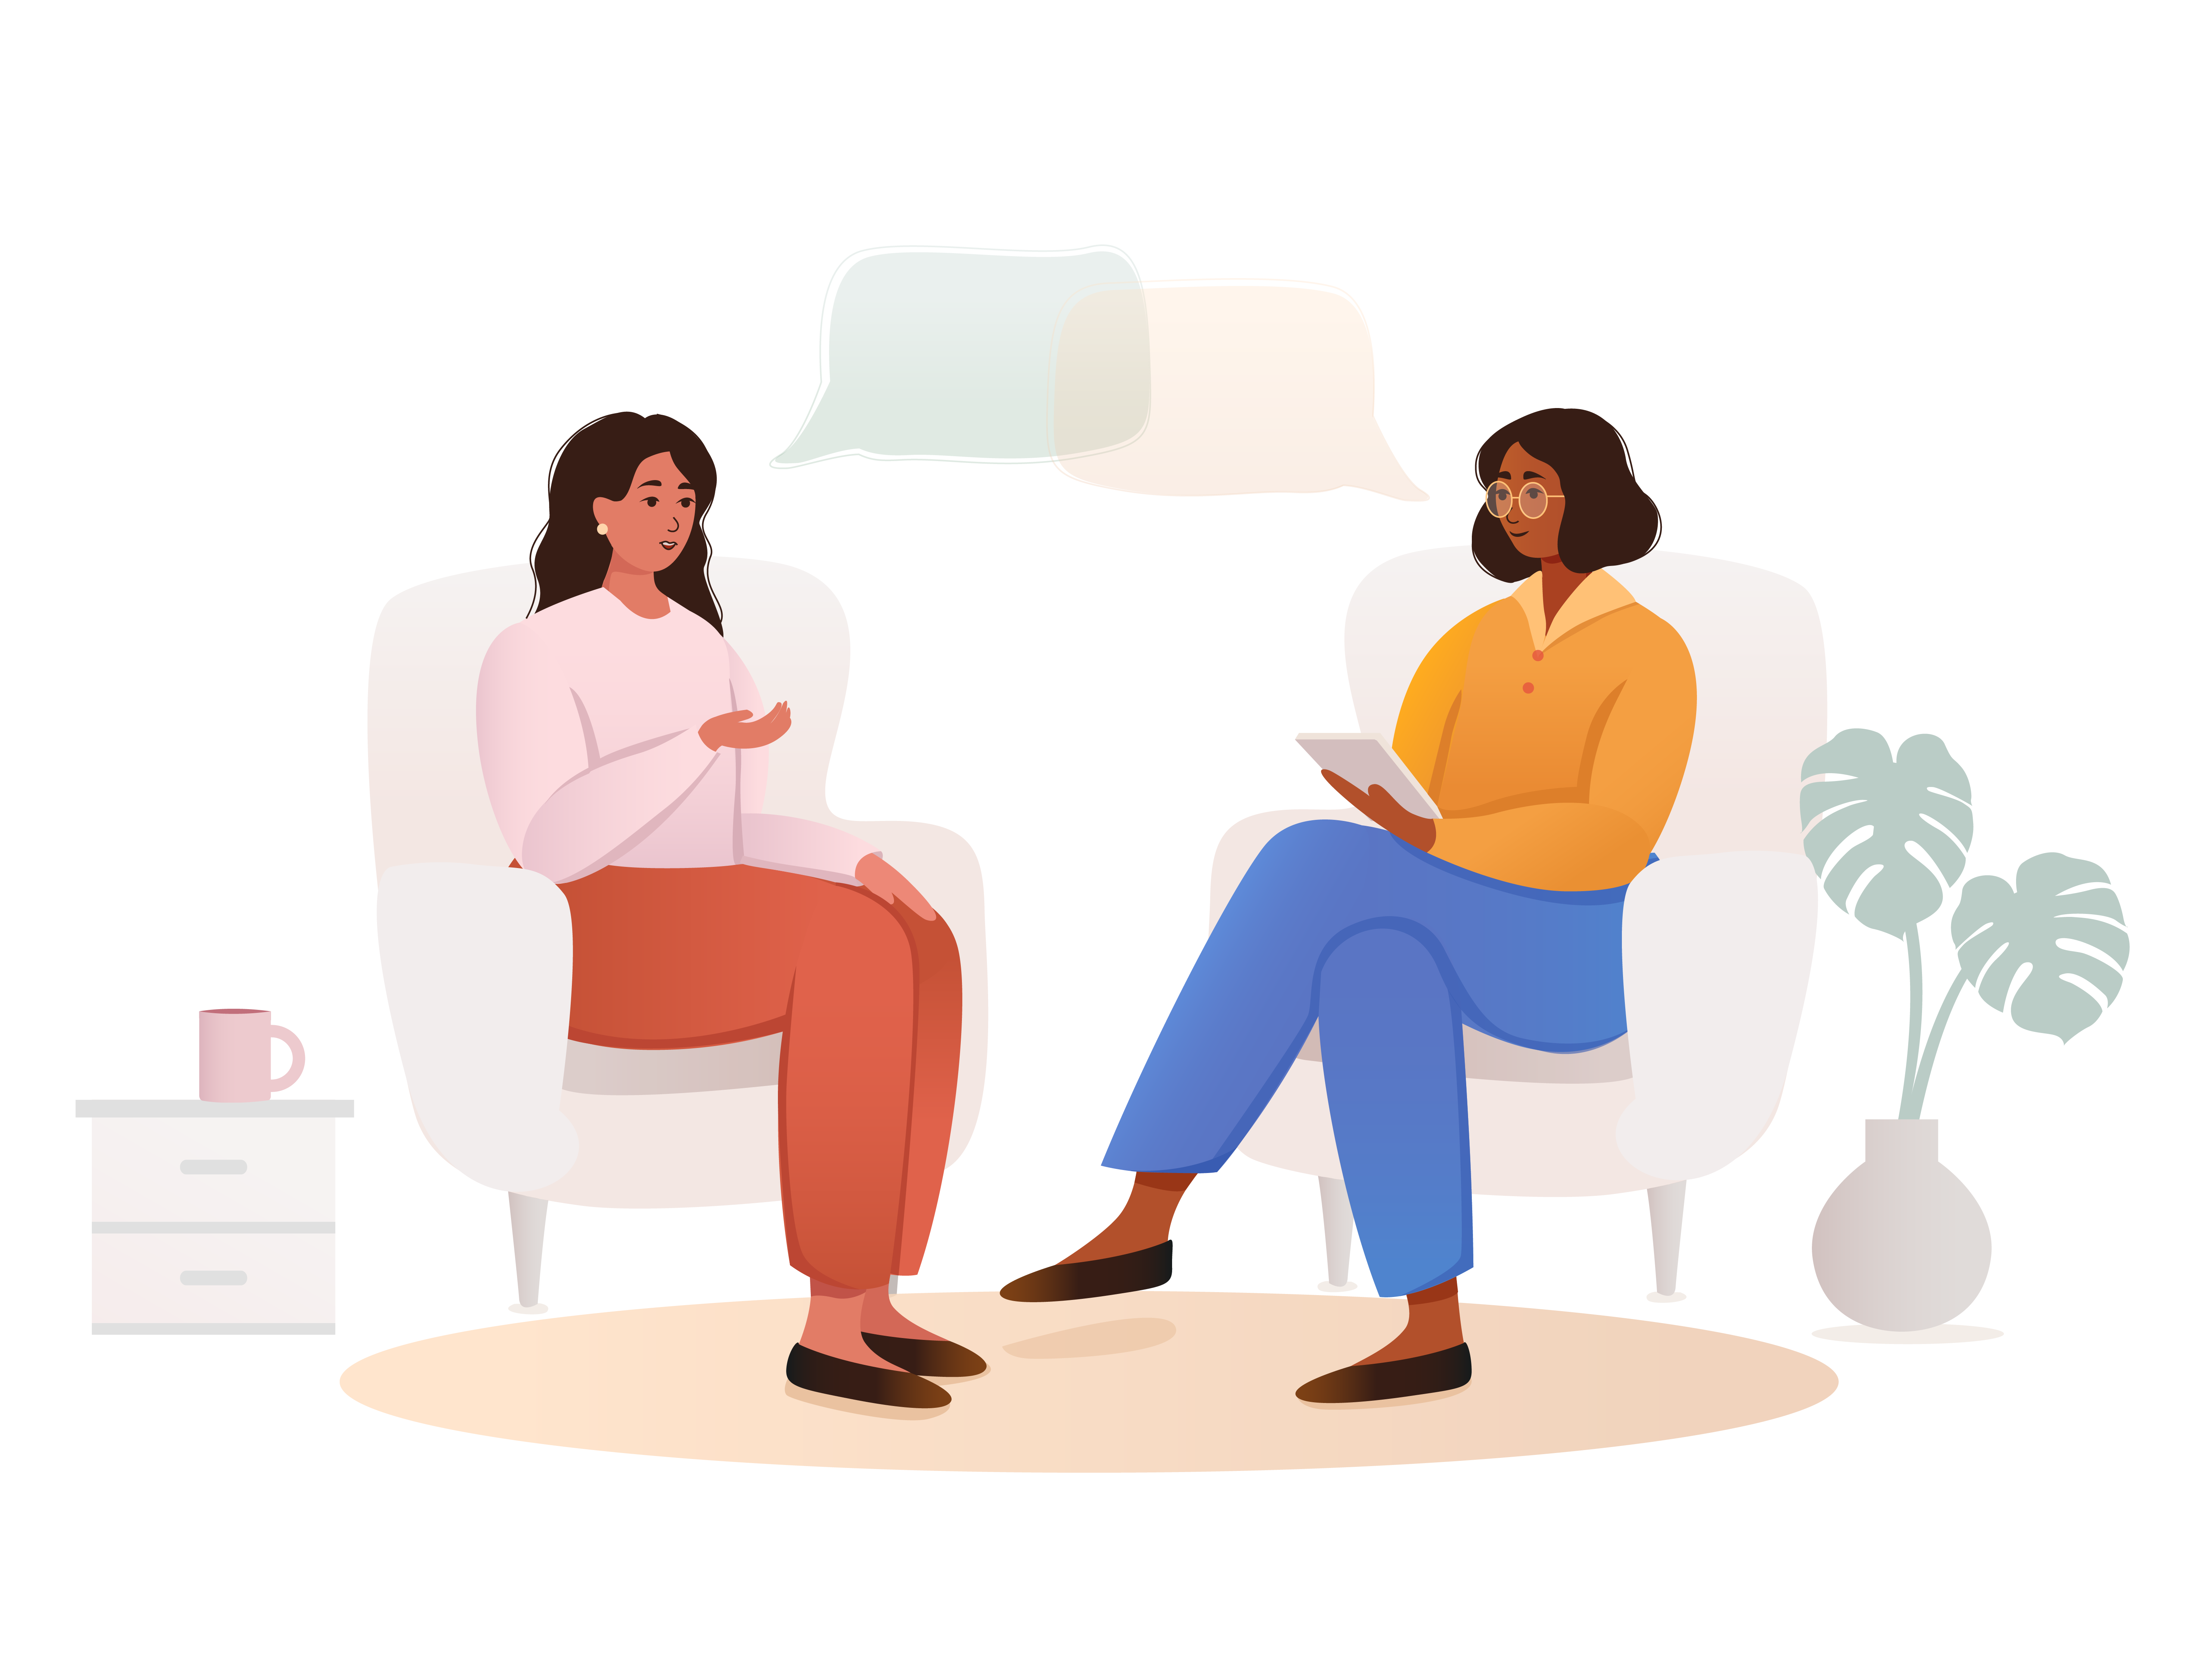 Revised: Many Illustrations for psychologist group practice website w comfortable feel